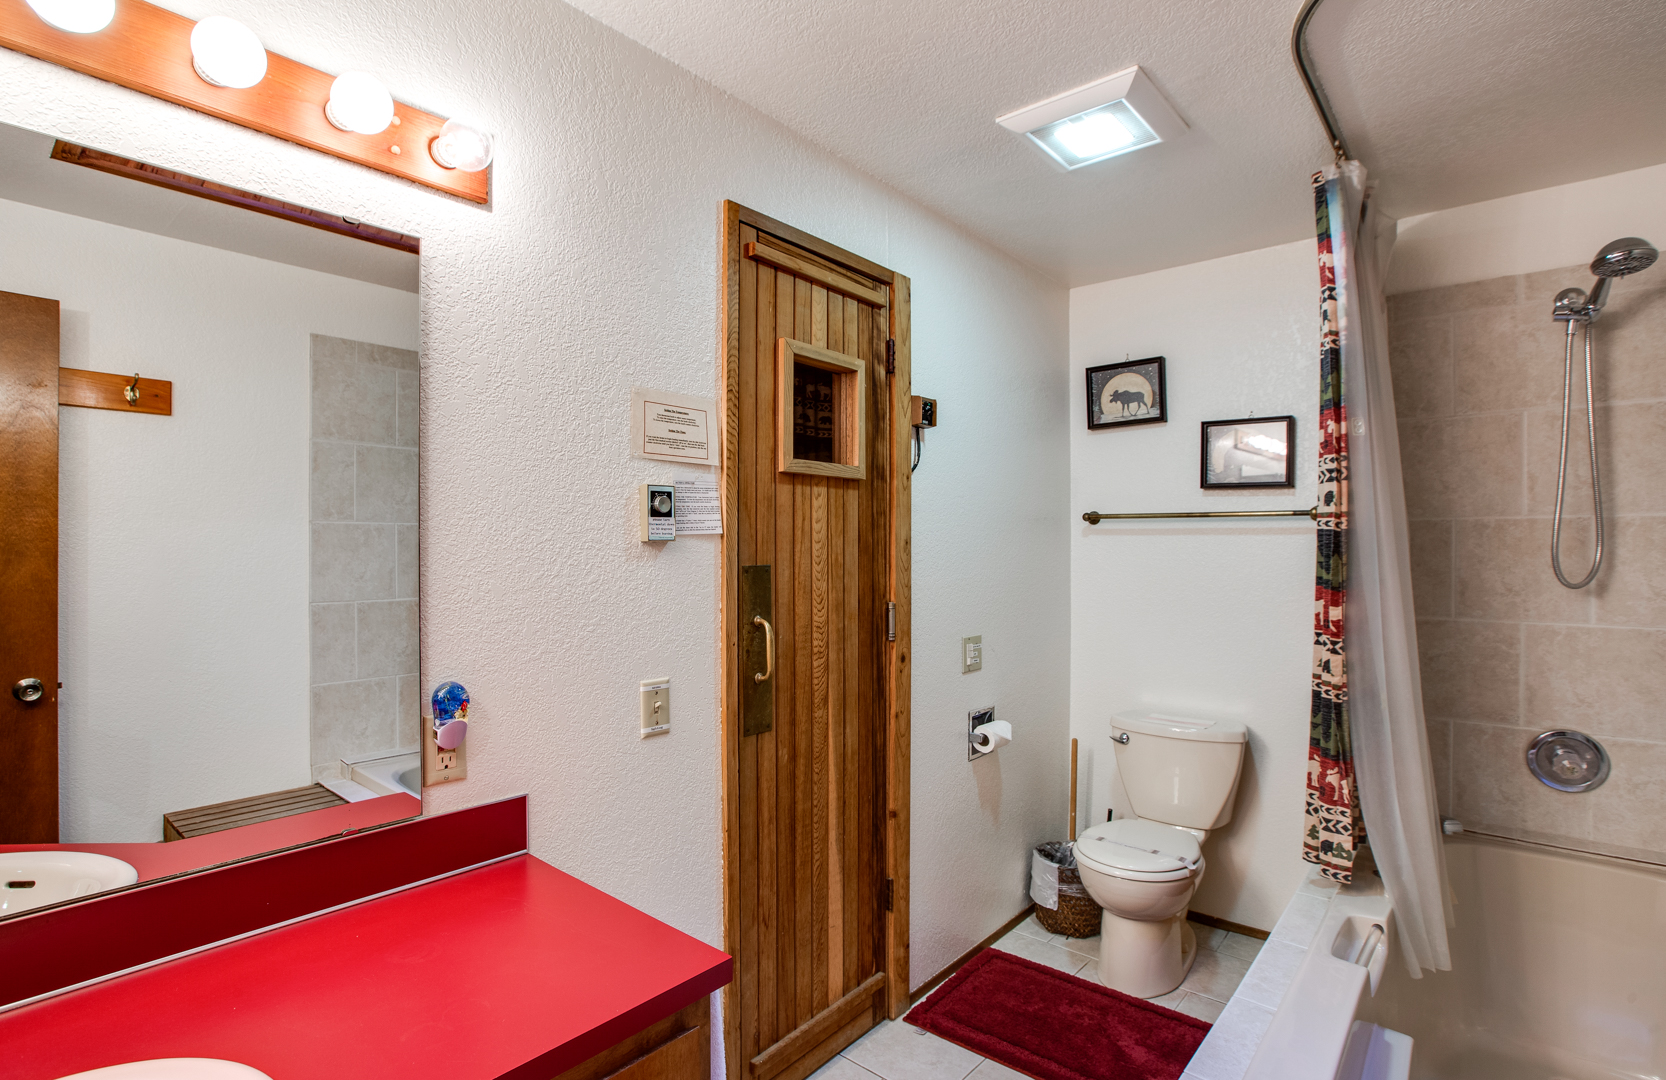 Main bathroom with attached sauna